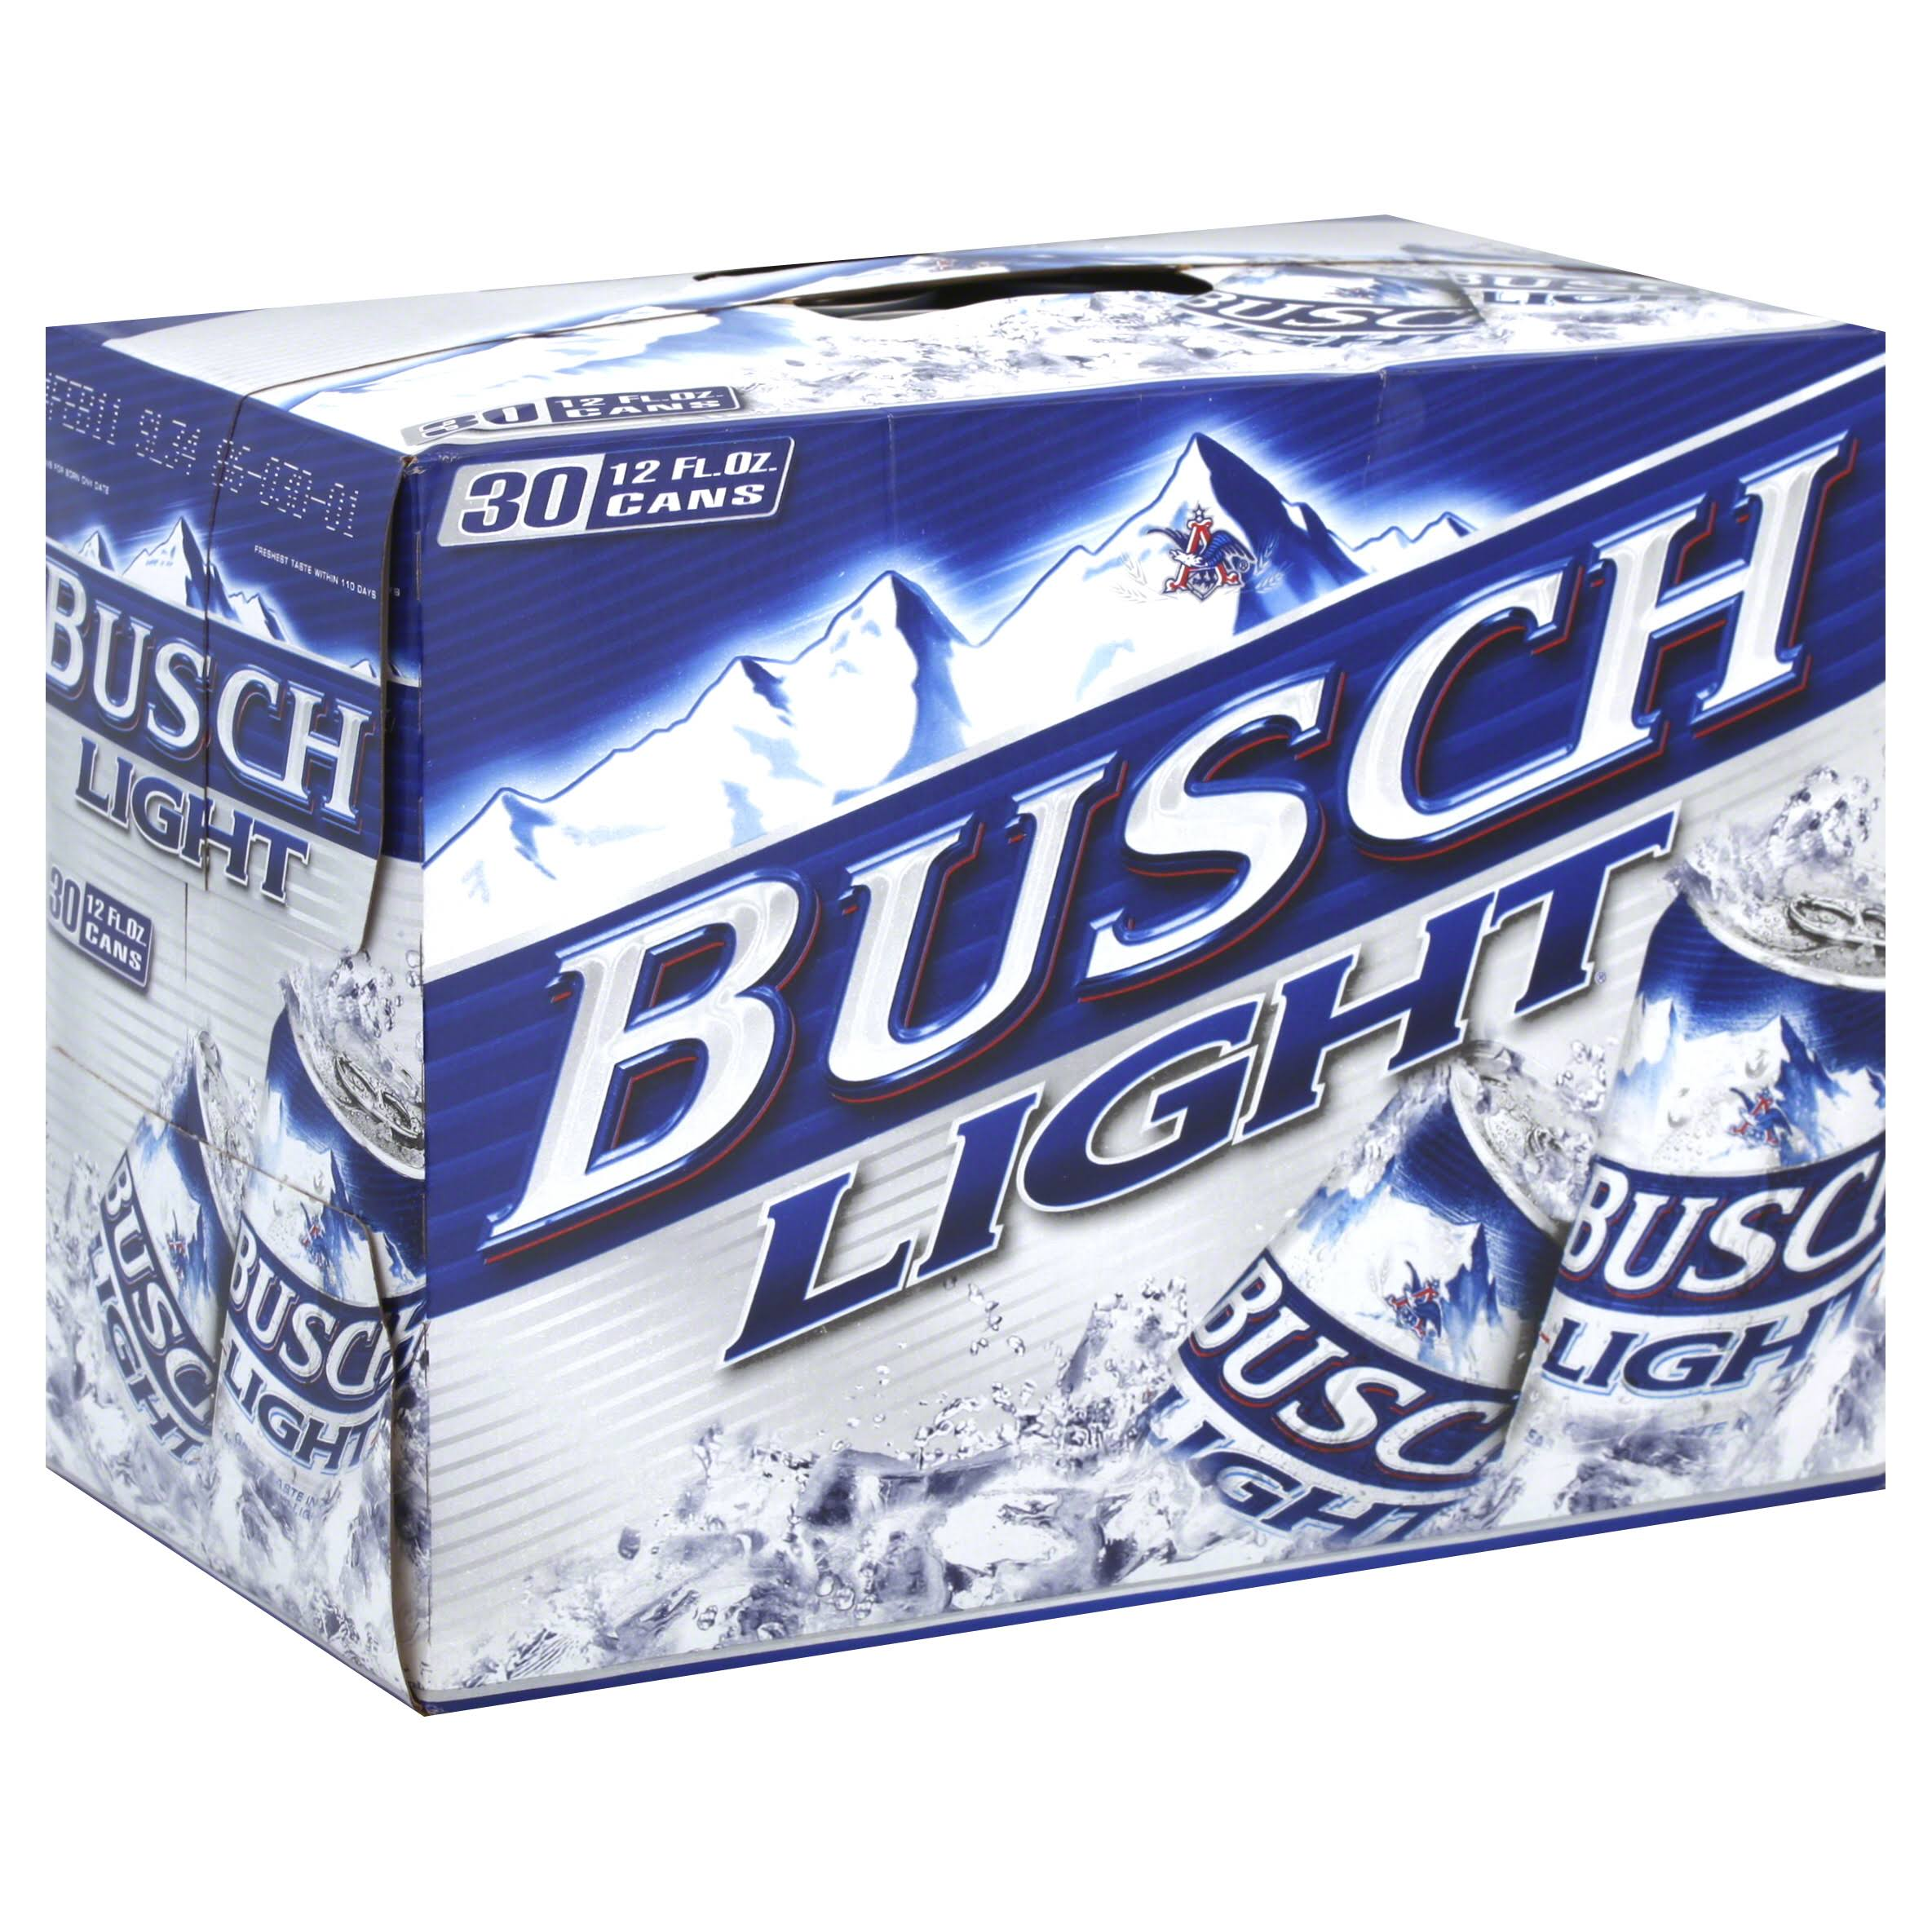 Busch Light Beer - 30 Cans